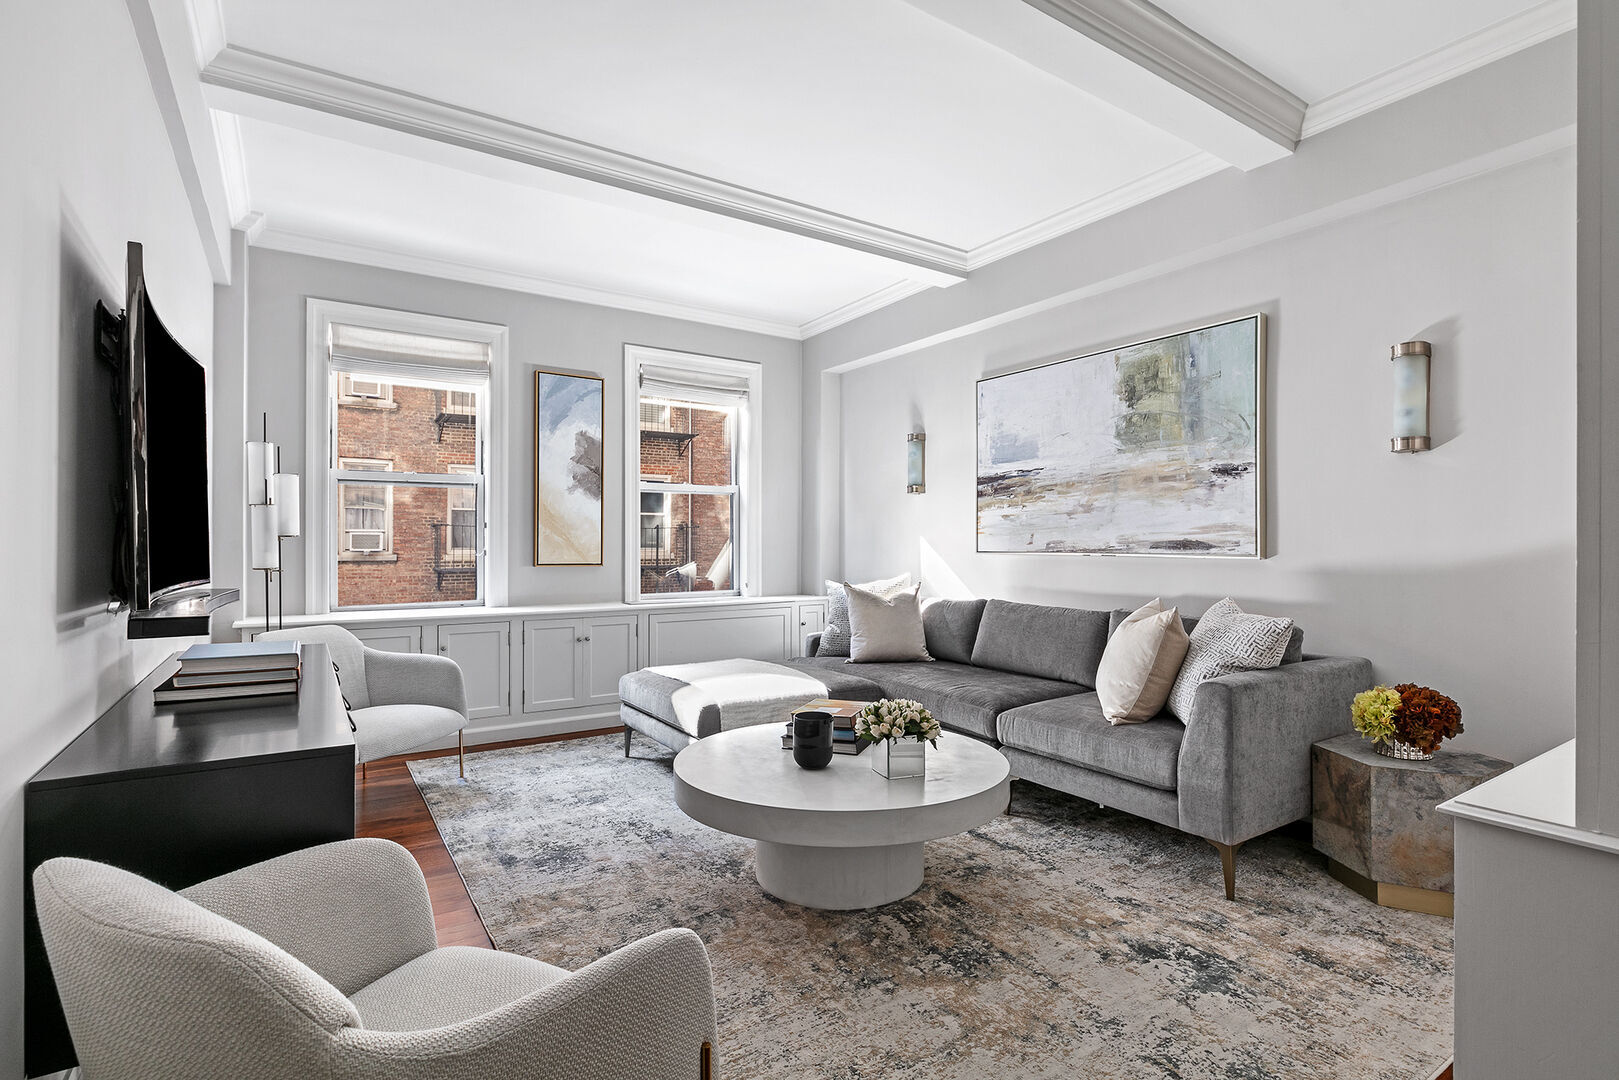 Apartment for sale at 114 East 90th Street, Apt 2-D